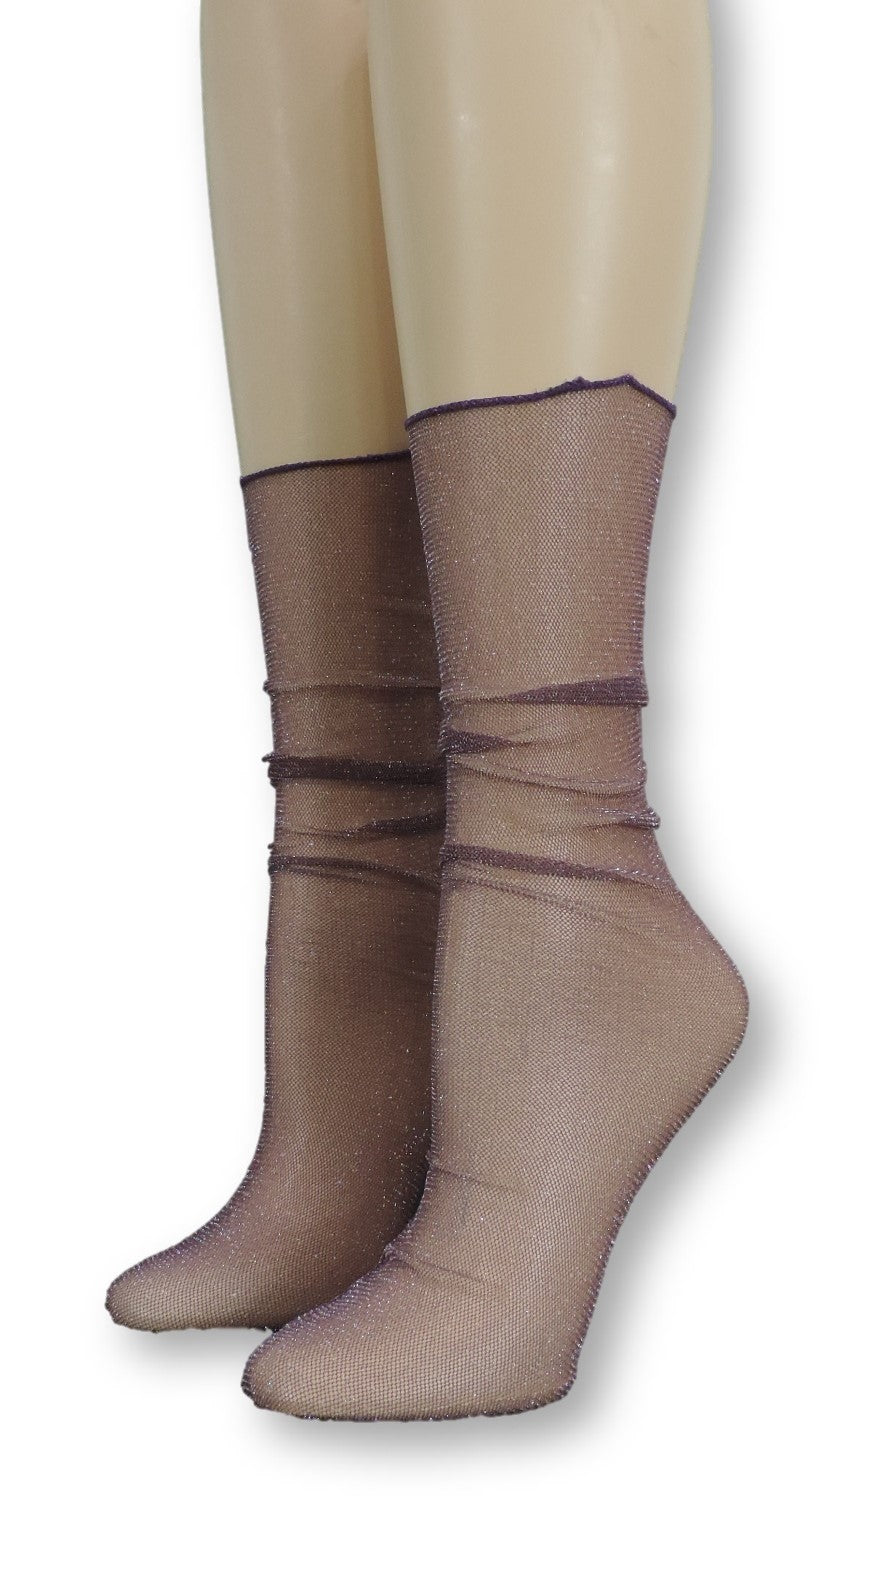 Violet Tulle Socks - Global Trendz Fashion®